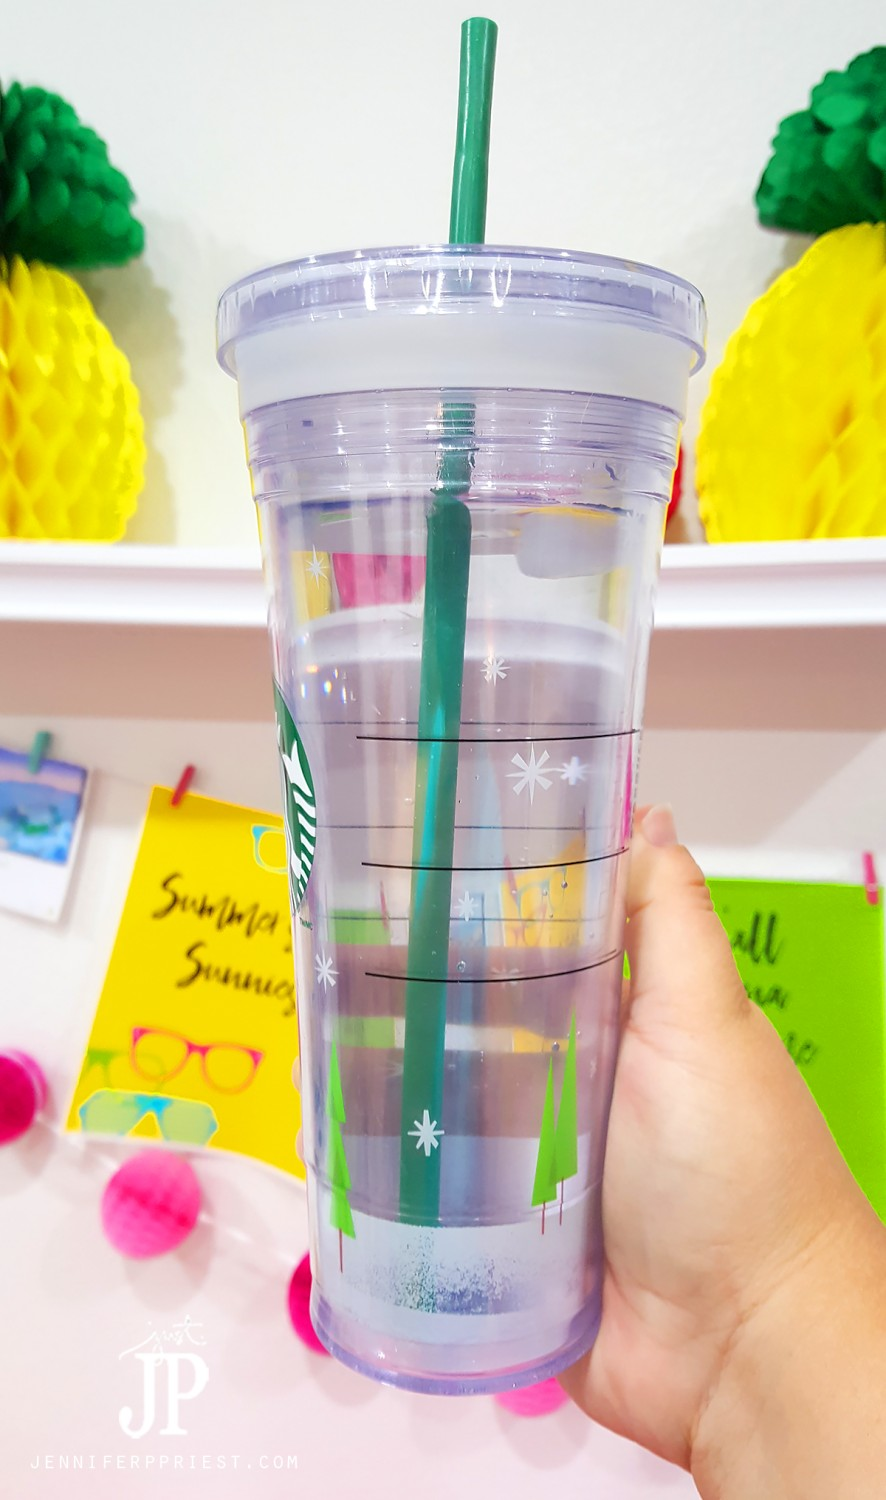 fill-reusable-tumblers-and-travel-mugs-with-coffee-and-water-instead-of-buying-disposable-jenniferppriest